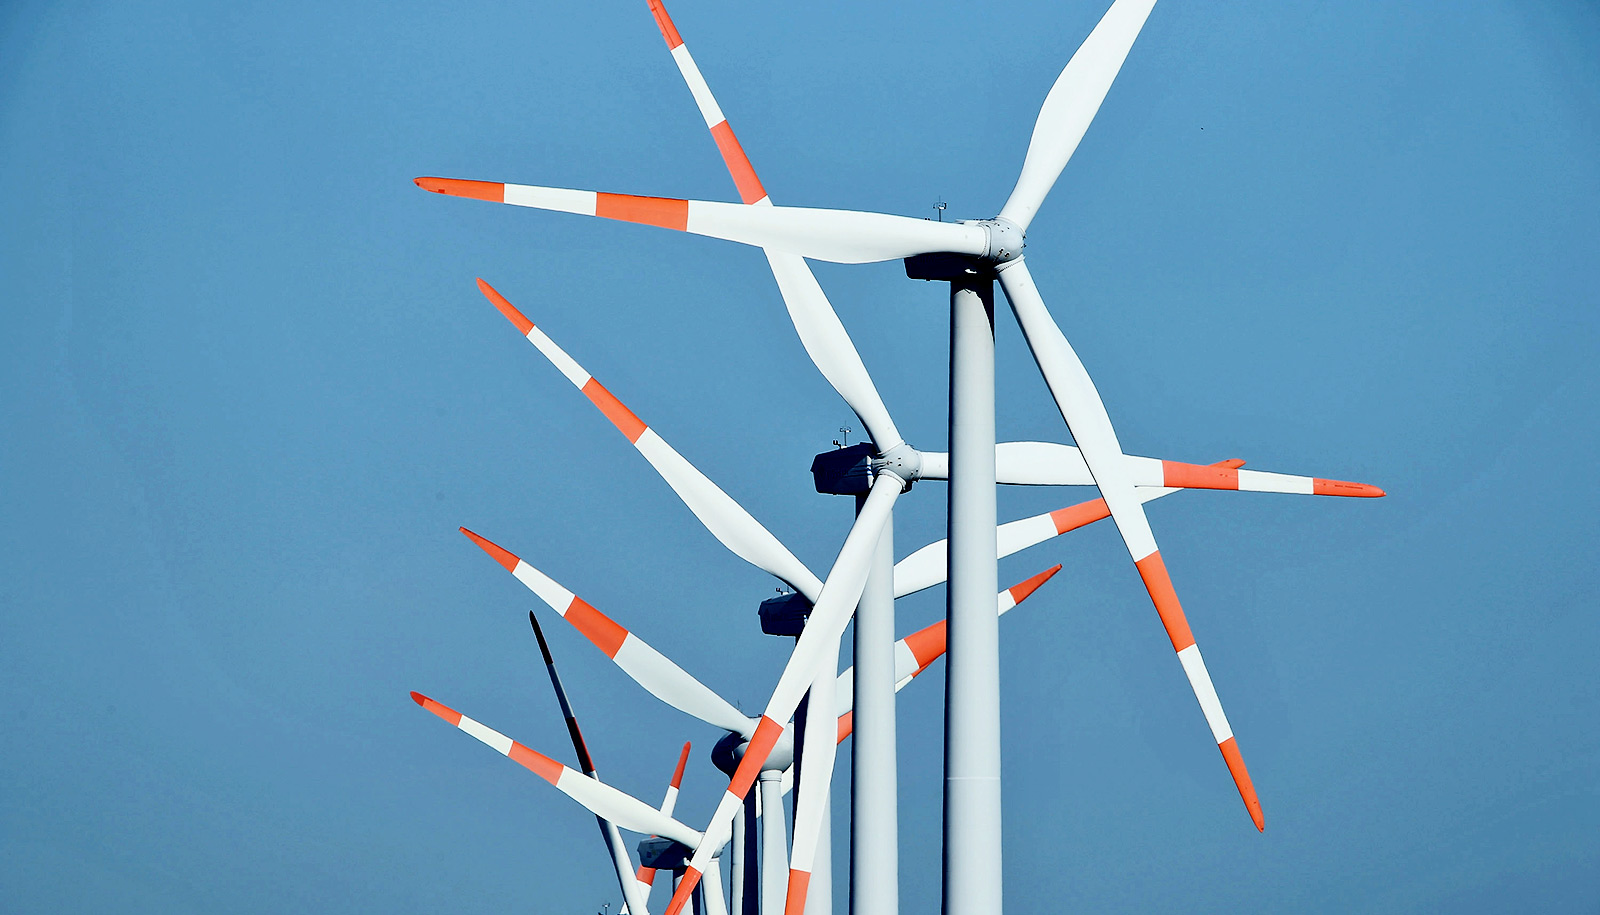 for more energy wind turbines should go with the airflow futurity